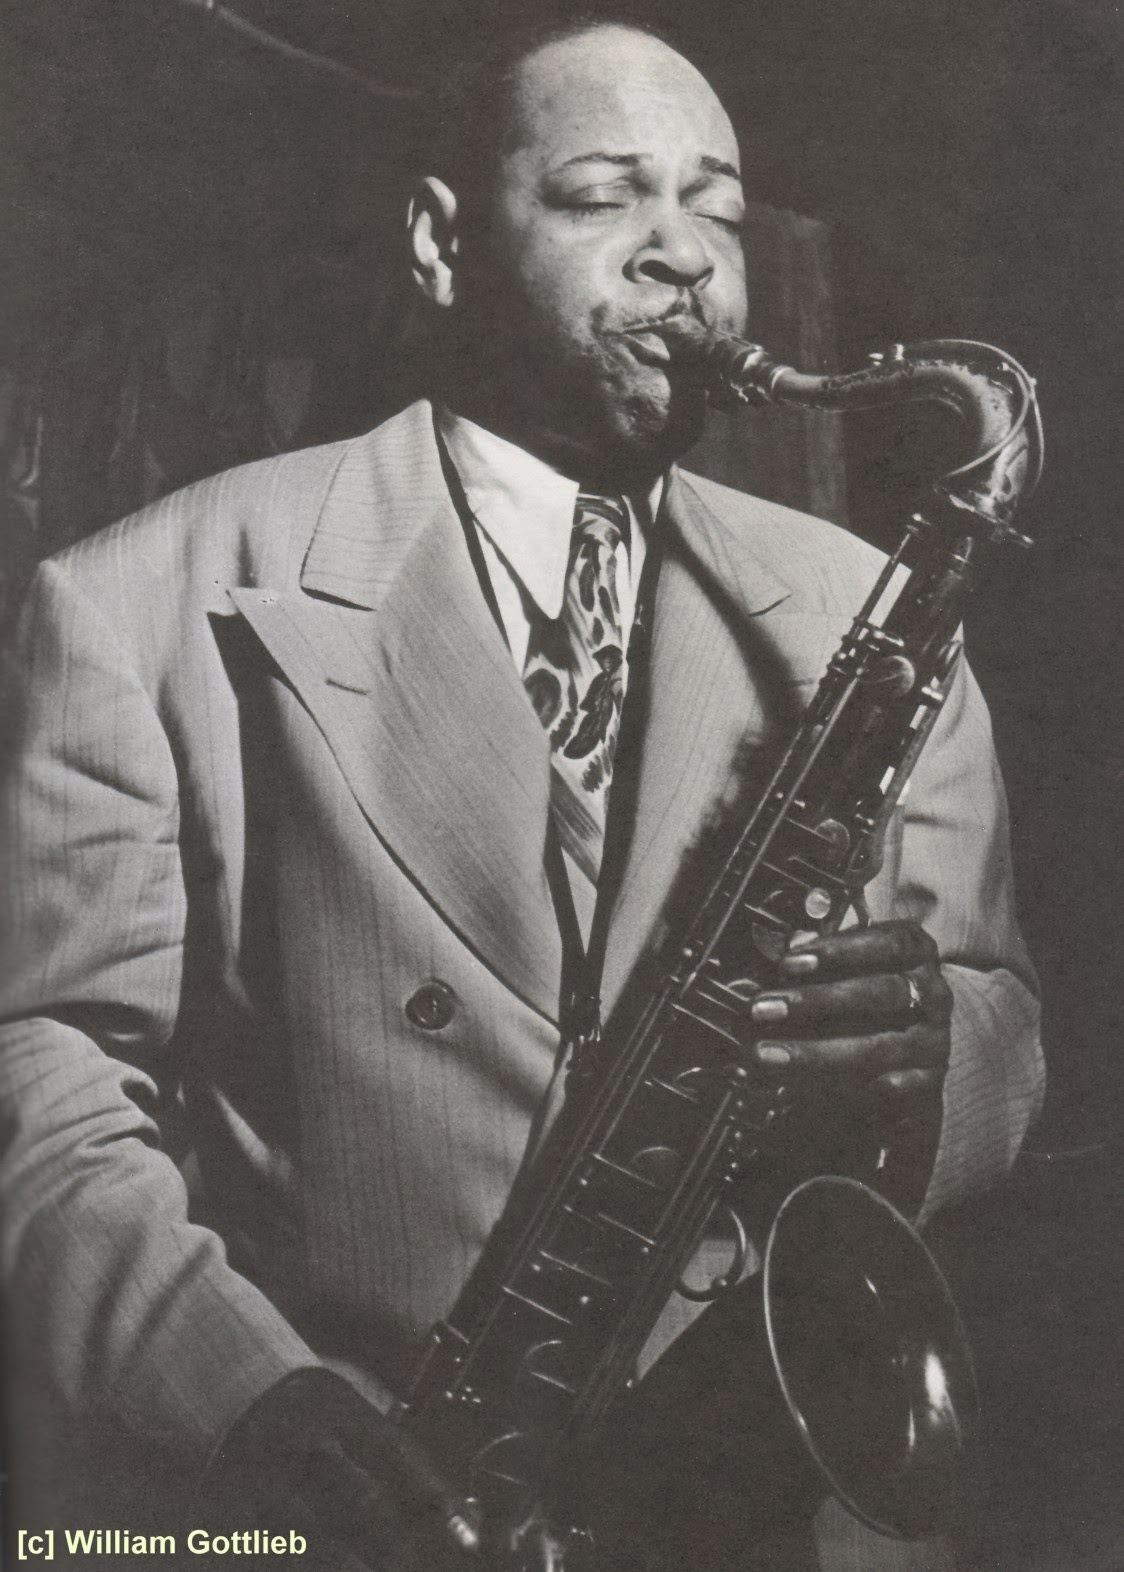 coleman hawkins Coleman hawkins discography and songs: music profile for coleman hawkins, born november 21, 1904 genres: jazz, swing, bebop albums include we insist max roach's freedom now suite, the hawk flies high, and coleman hawkins encounters ben webster.